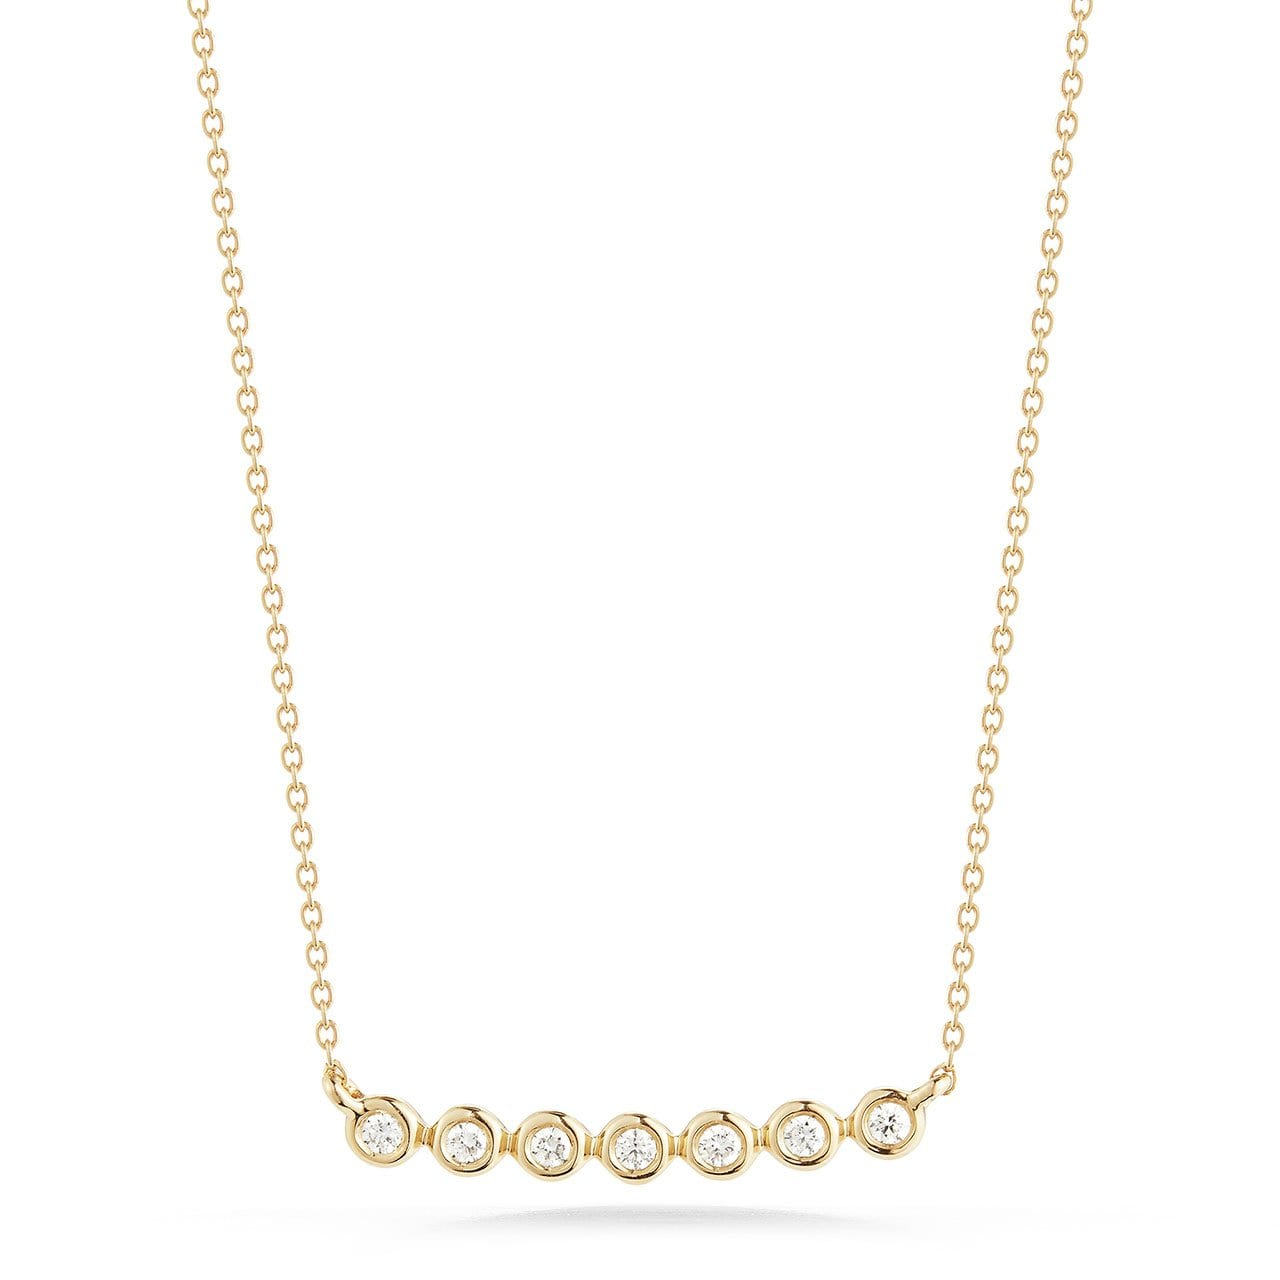 Vincents Fine Jewelry | Dana Rebecca | Lulu Jack Bezel Bar Necklace